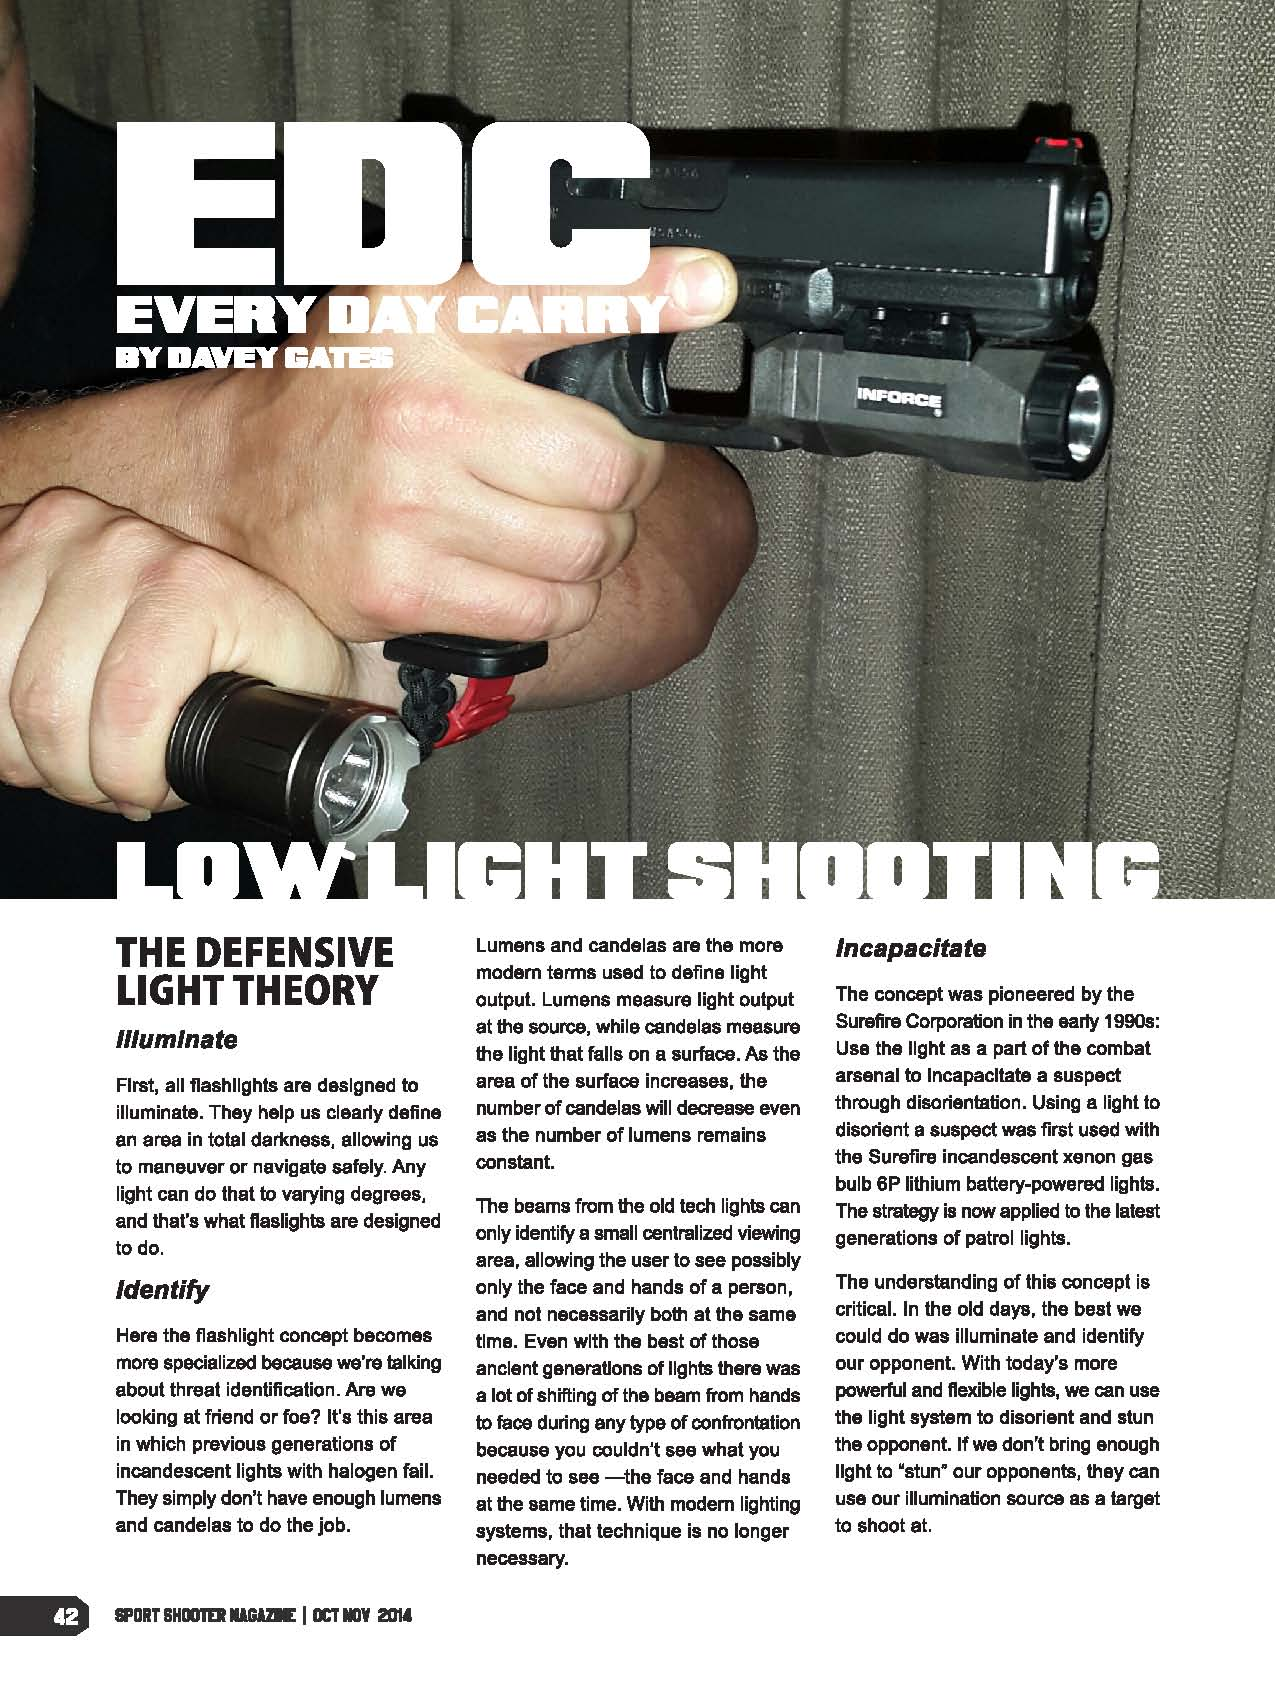 Sport Shooter article by Davey Gates